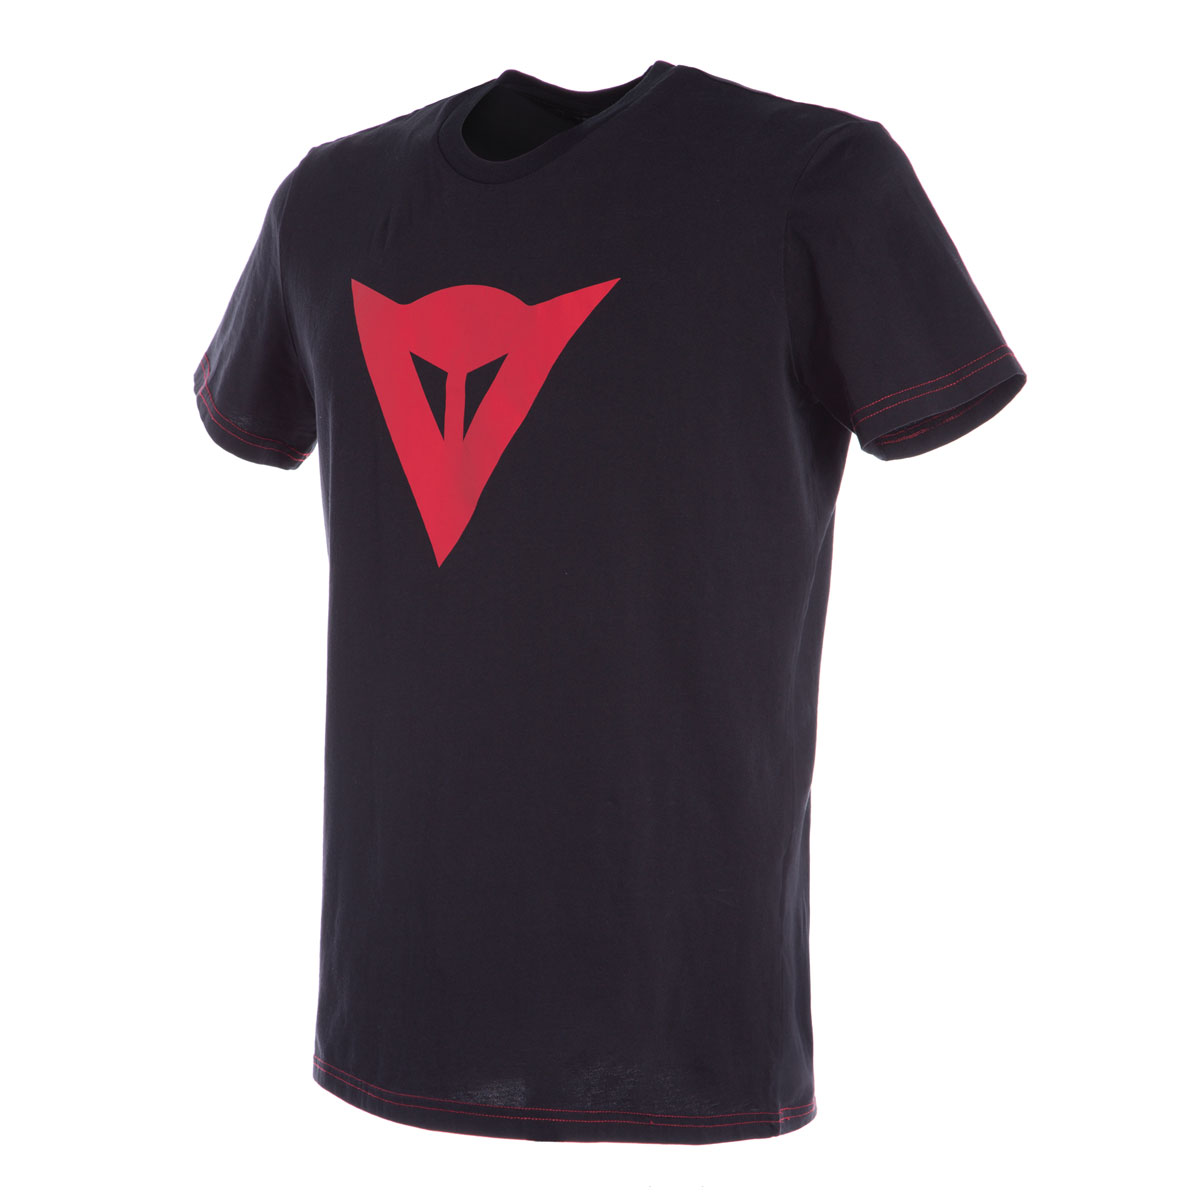 Dainese Men's Speed Demon Black T-Shirt